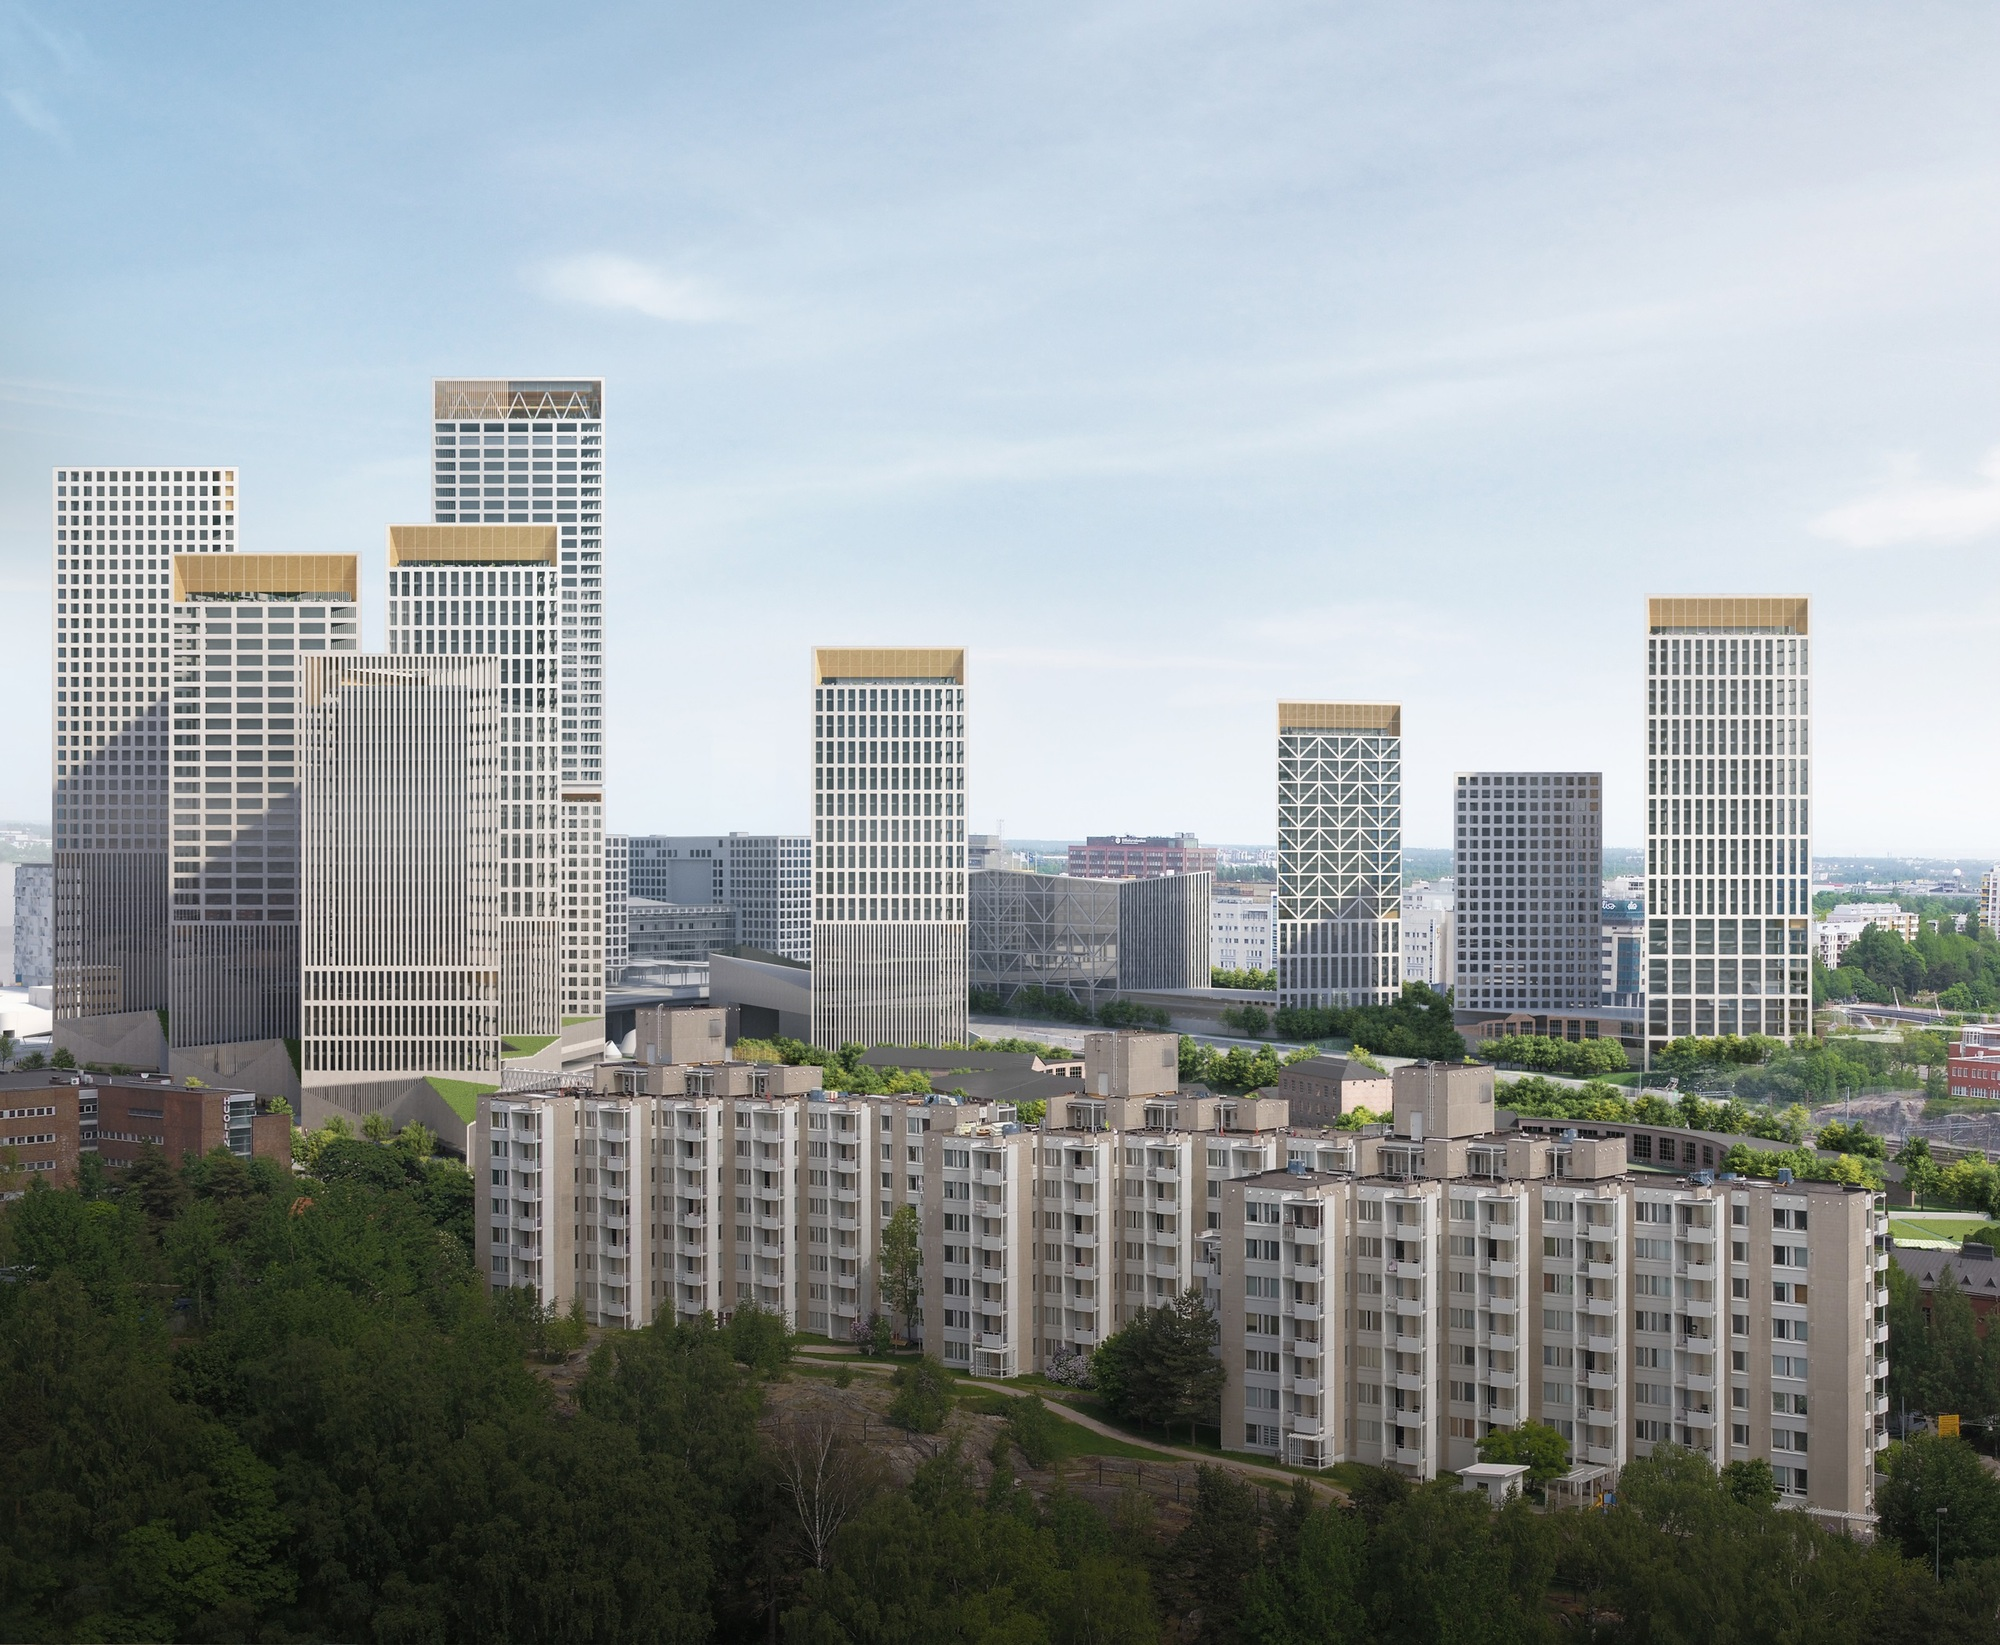 Lahdelma & Mahlamäki Create Triangular Towers for a New High-Rise District in Helsinki